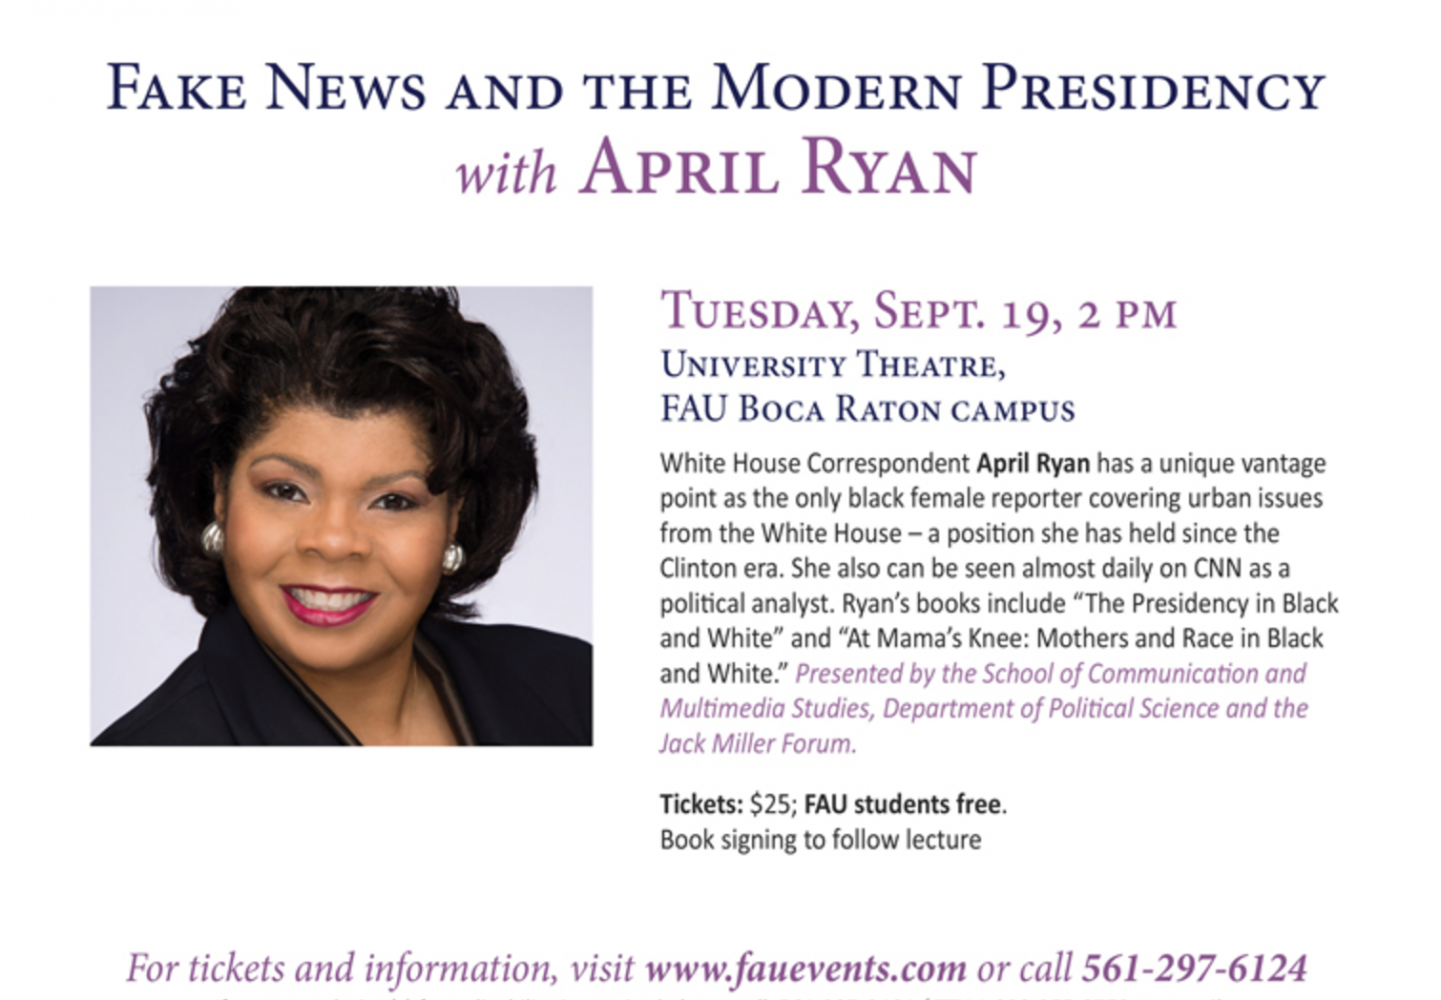 White+House+correspondent+April+Ryan+will+be+at+FAU+this+Tuesday.+Photo+courtesy+of+FAU+College+of+Arts+and+Letters